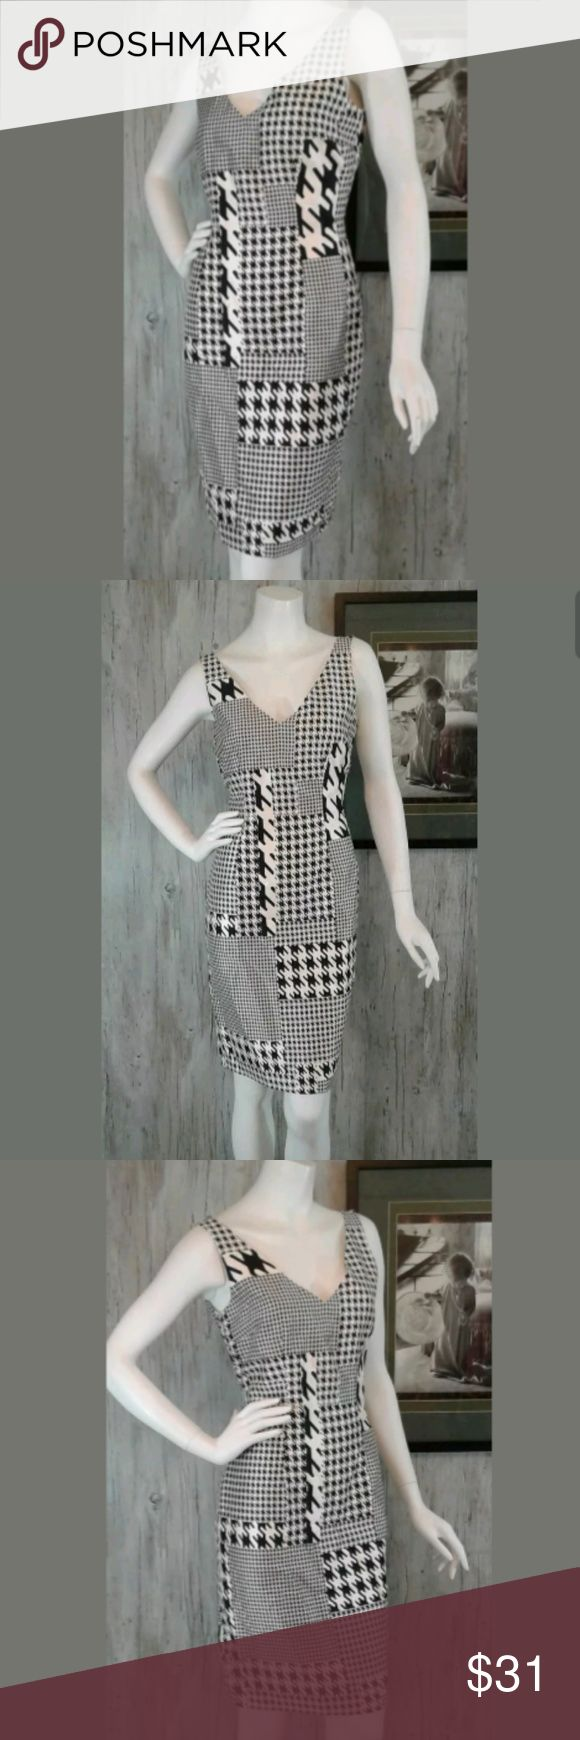 "Kay Unger Womens Dress 6 100% Silk Kay Unger Womens Dress 6 100% Silk Sheath Black White Houndstooth V-Neck  * Gently Owned ~ Great Condition * Chest 17.5""   Laying Flat * Waist 15.25"" * Length 30.5"" Measurements Are Approximate  * Smoke Free ~ Pet Free Environment * Fast Shipping K320 Kay Unger Dresses"